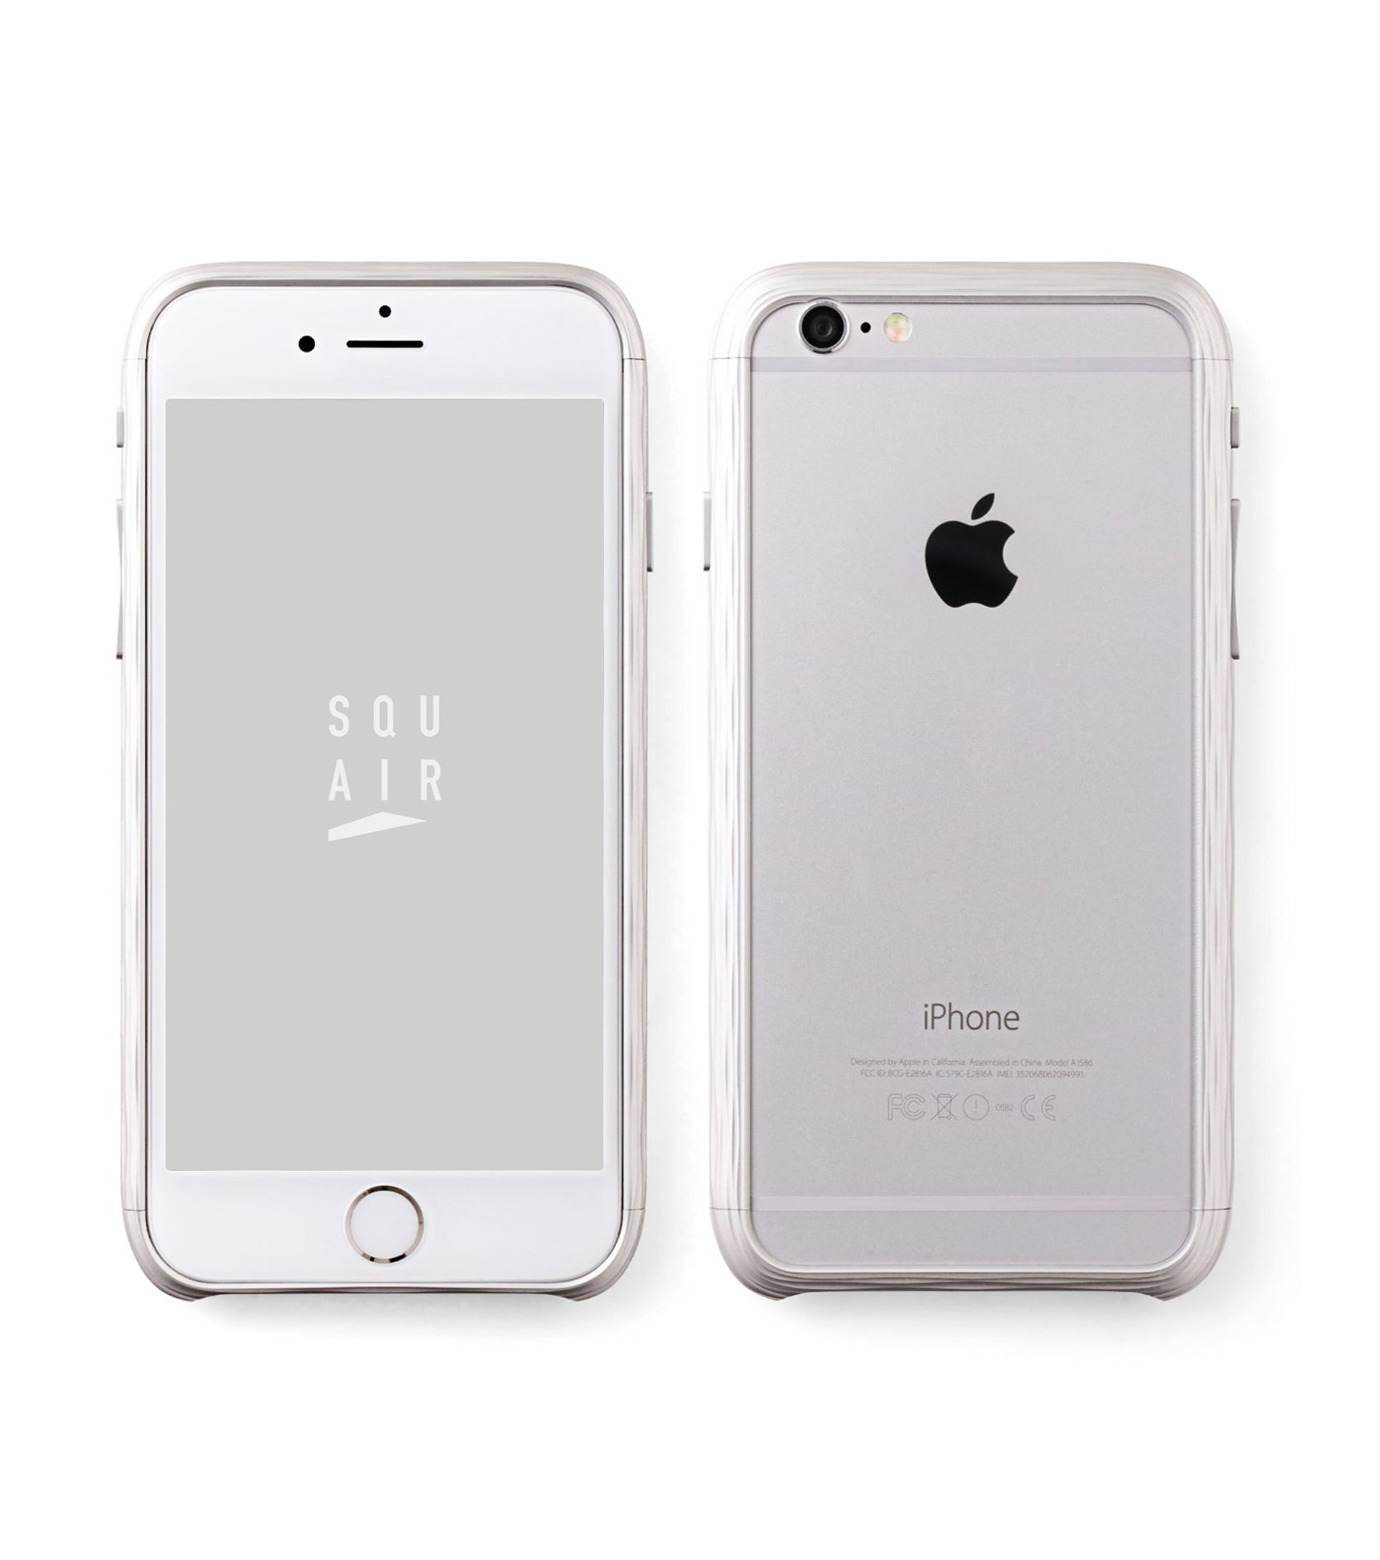 SQUAIR(スクエア)のThe Dimple for iPhone6-SILVER(ケースiphone6/6s/case iphone6/6s)-SQDMP620-SLV-1 拡大詳細画像1